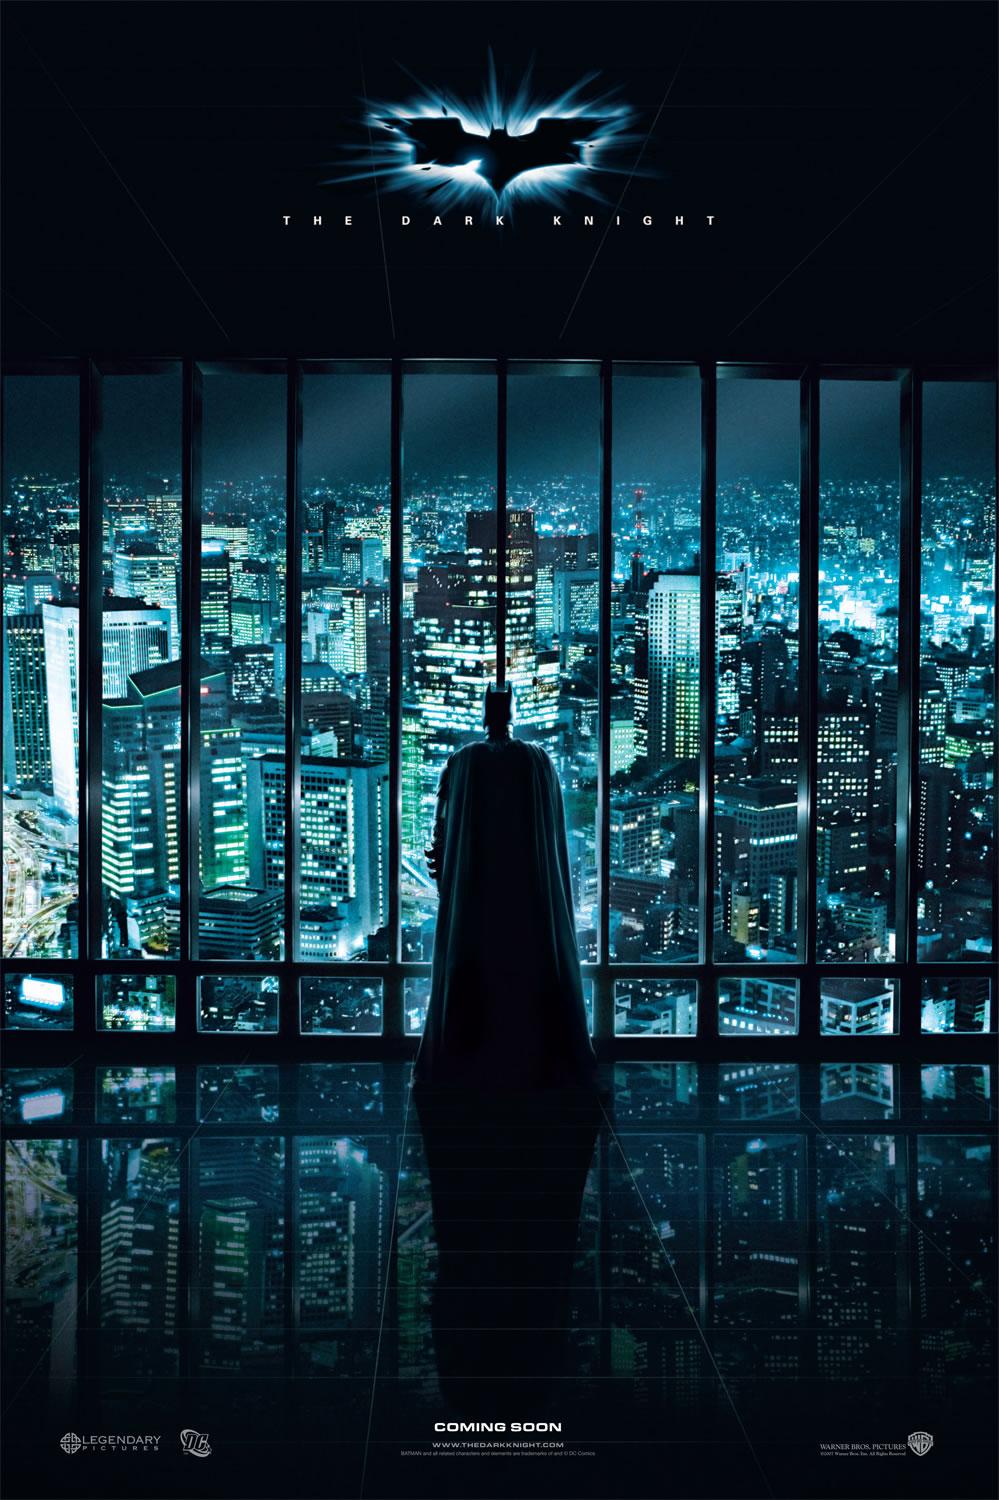 special review the dark knight an essay on ethics and directed by christopher nolan